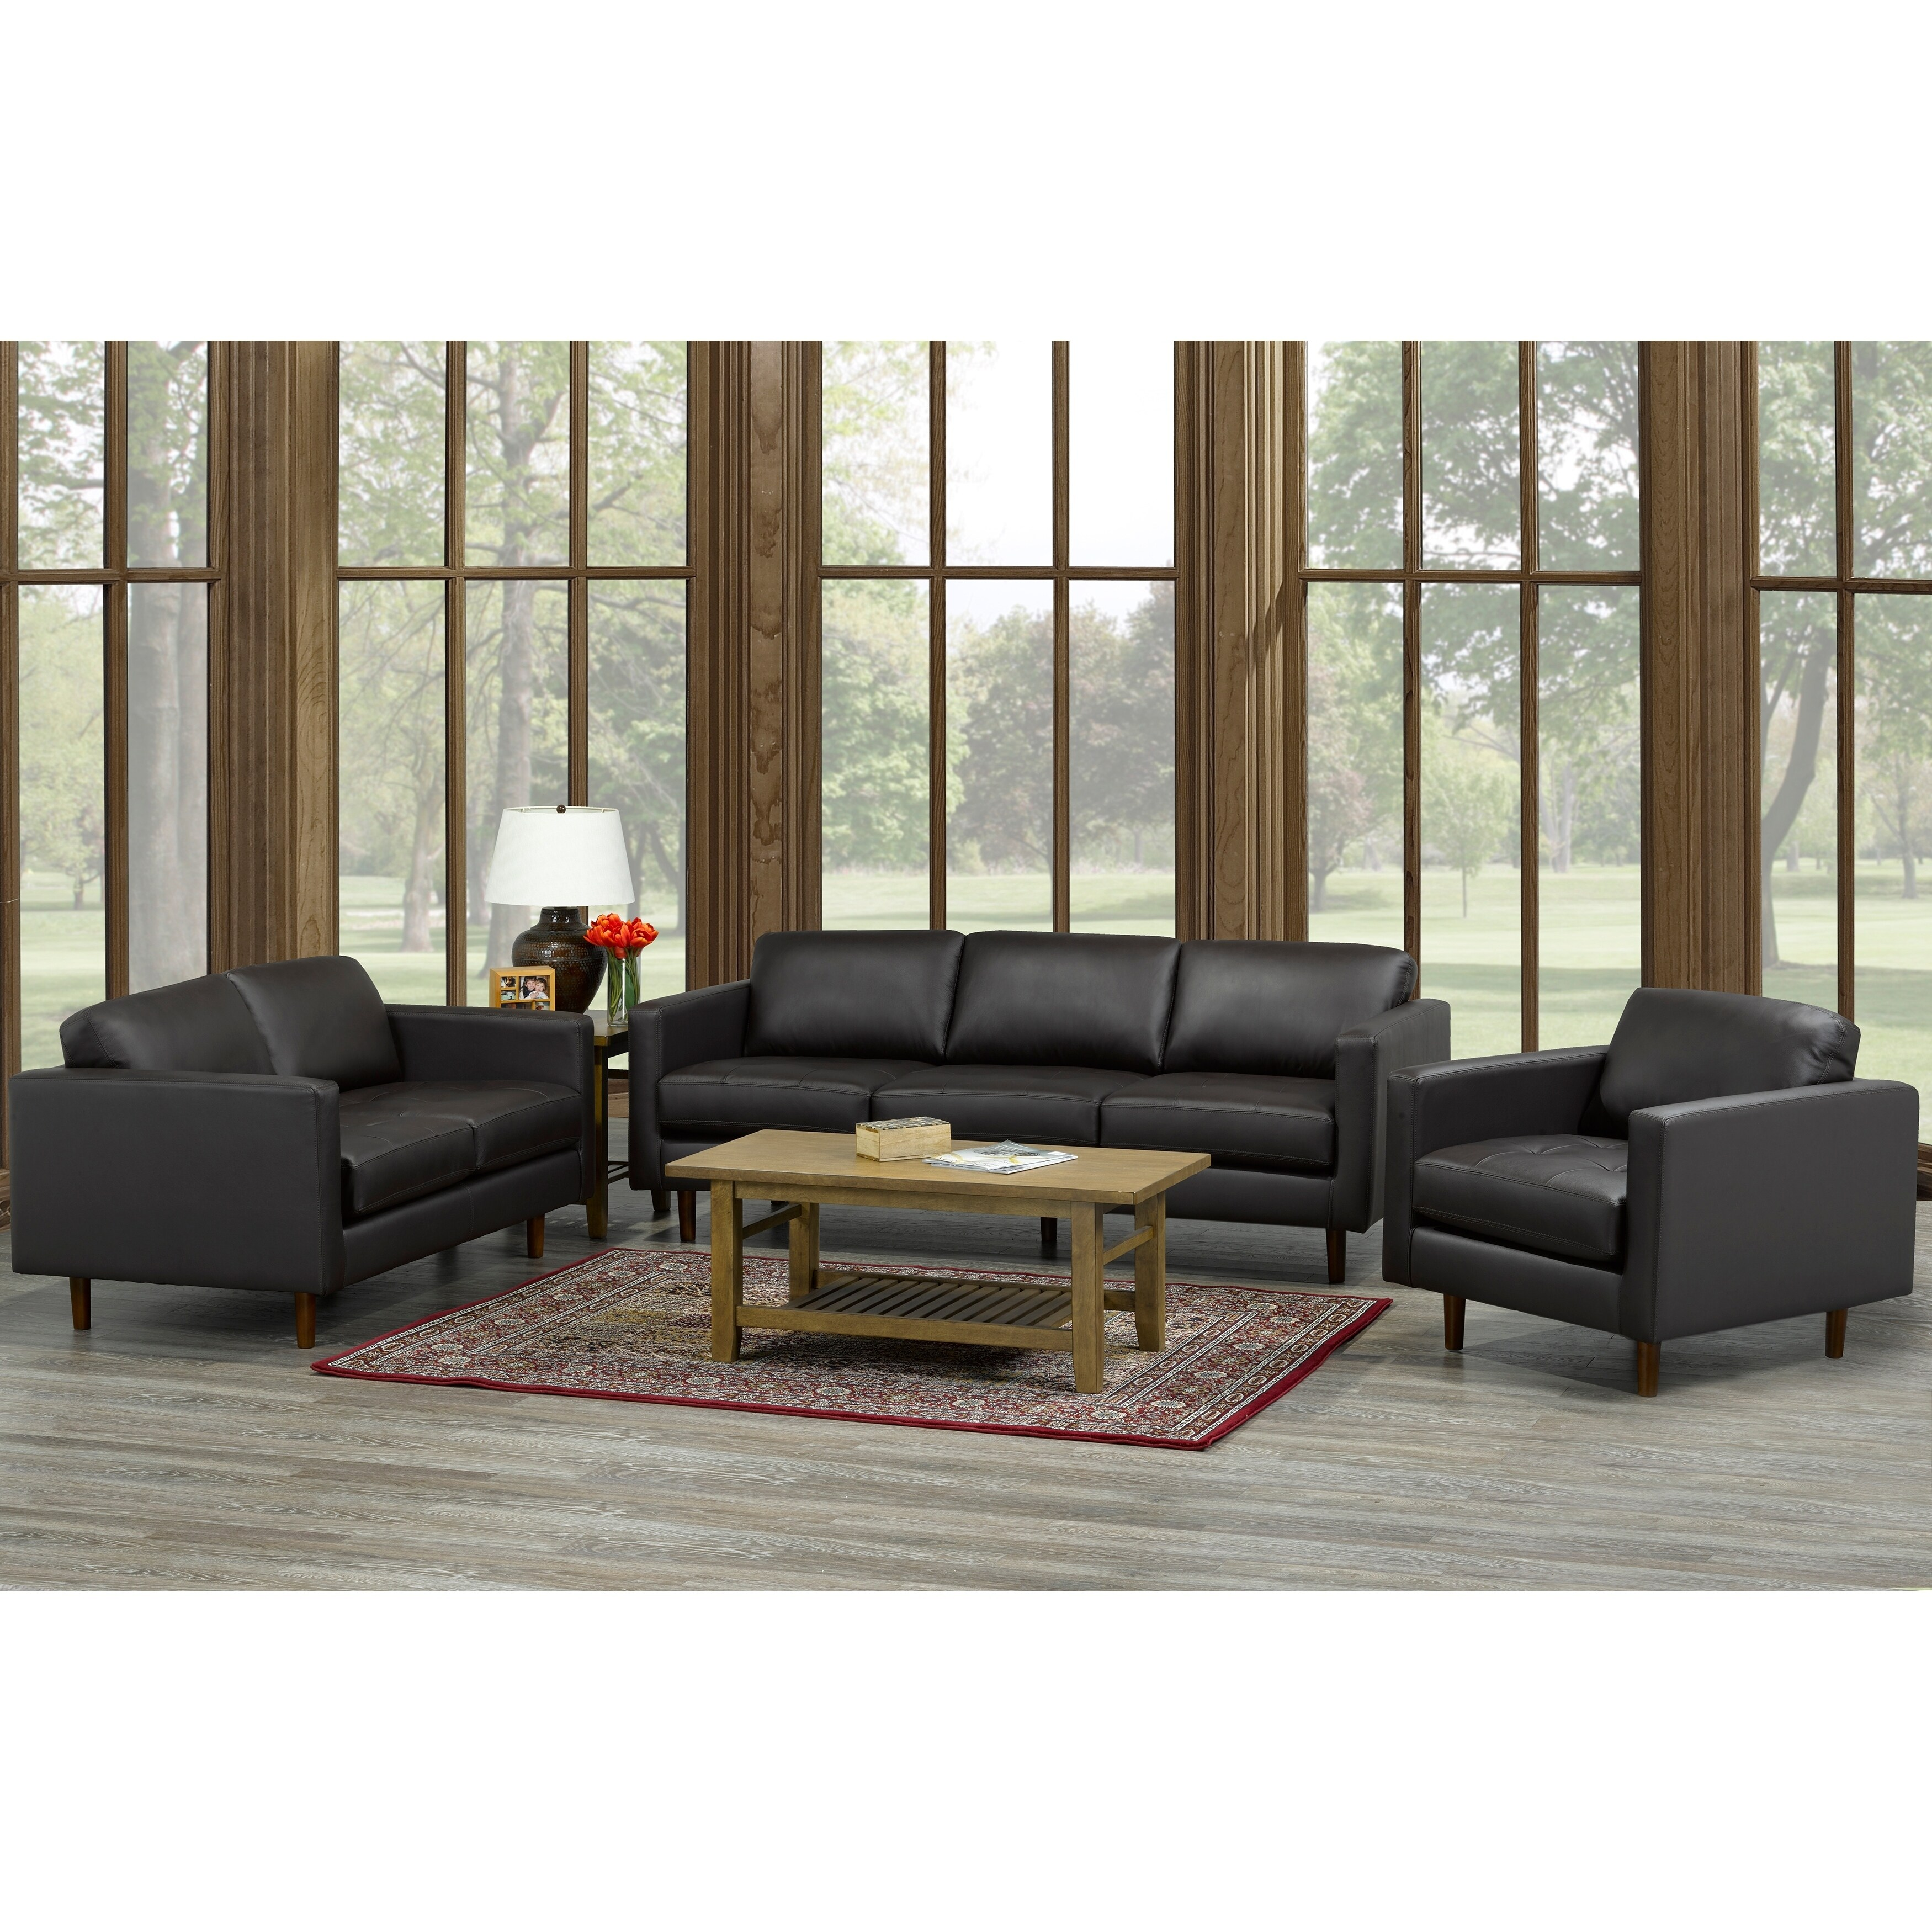 Lola Mid Century Modern Chocolate Brown Top Grain Italian Leather Tufted Sofa Loveseat And Chair